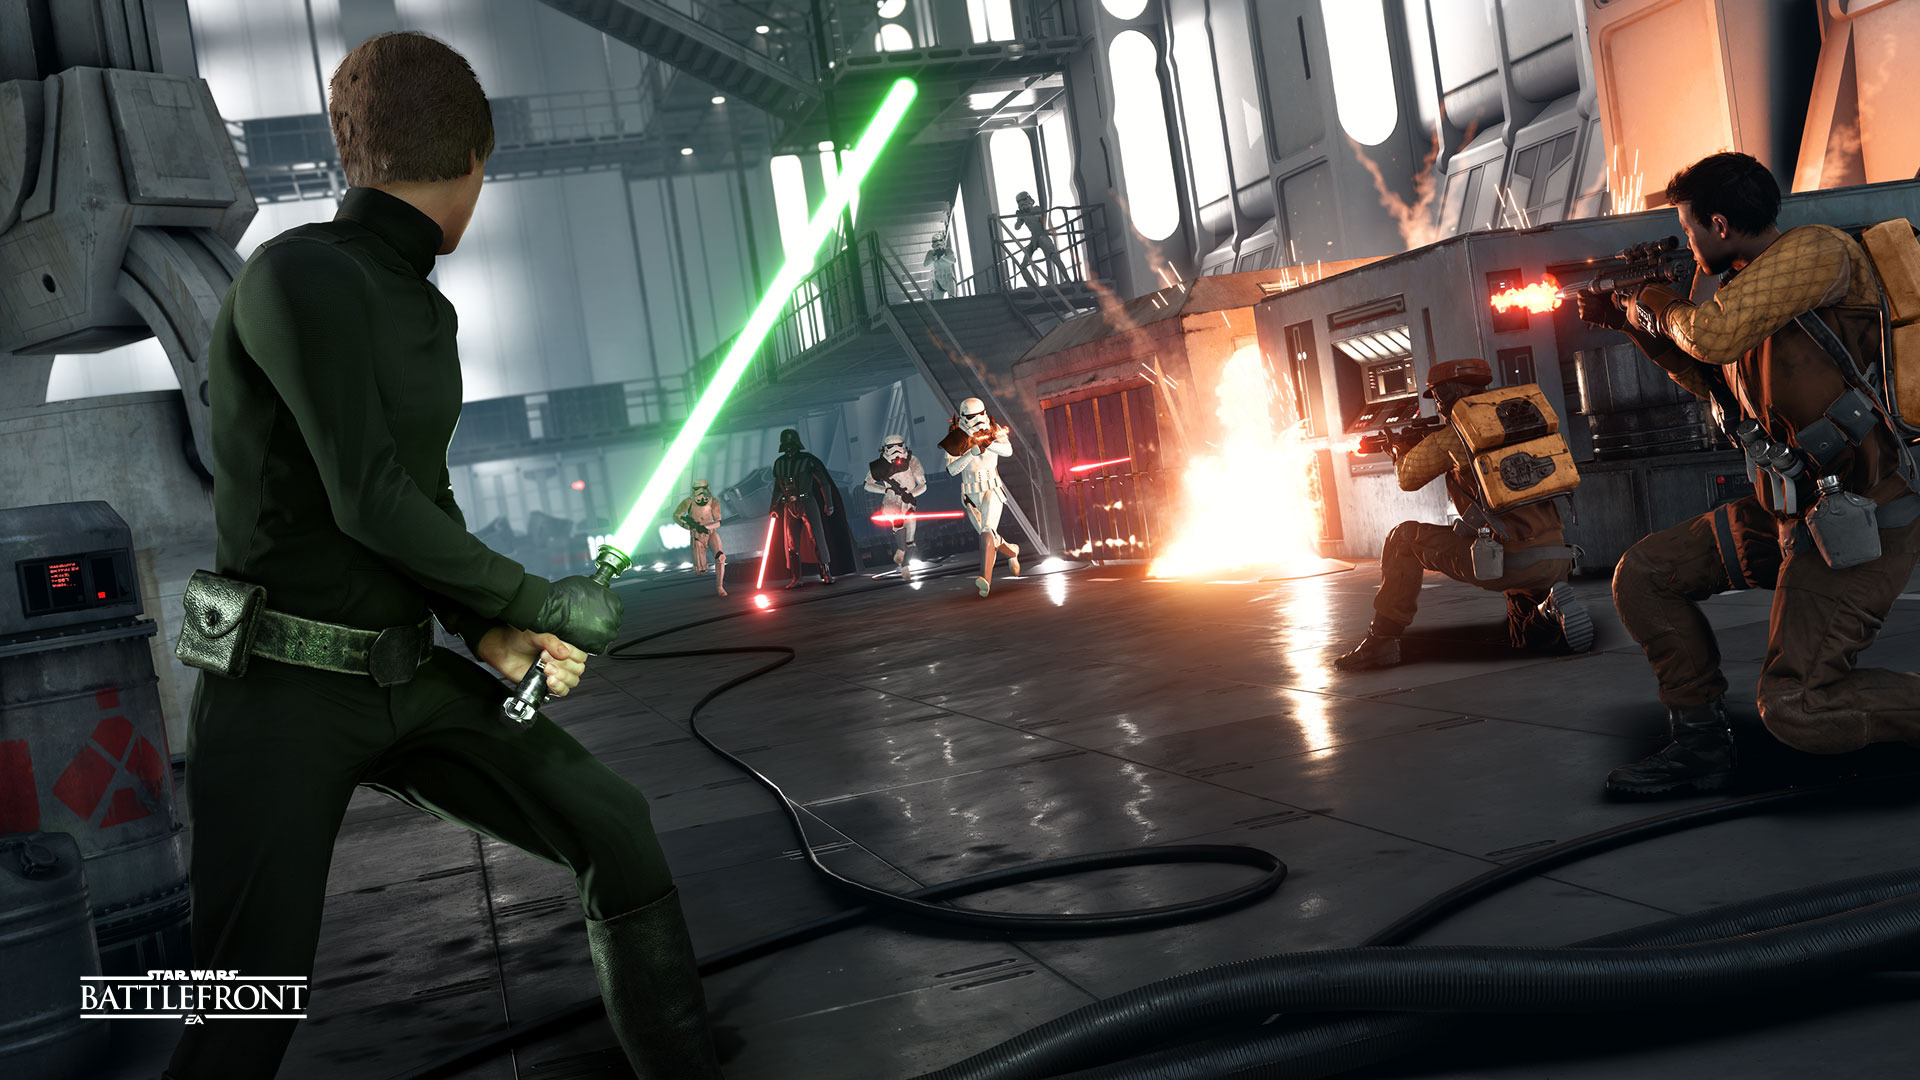 Star Wars Battlefront: PS4 vs XBox One